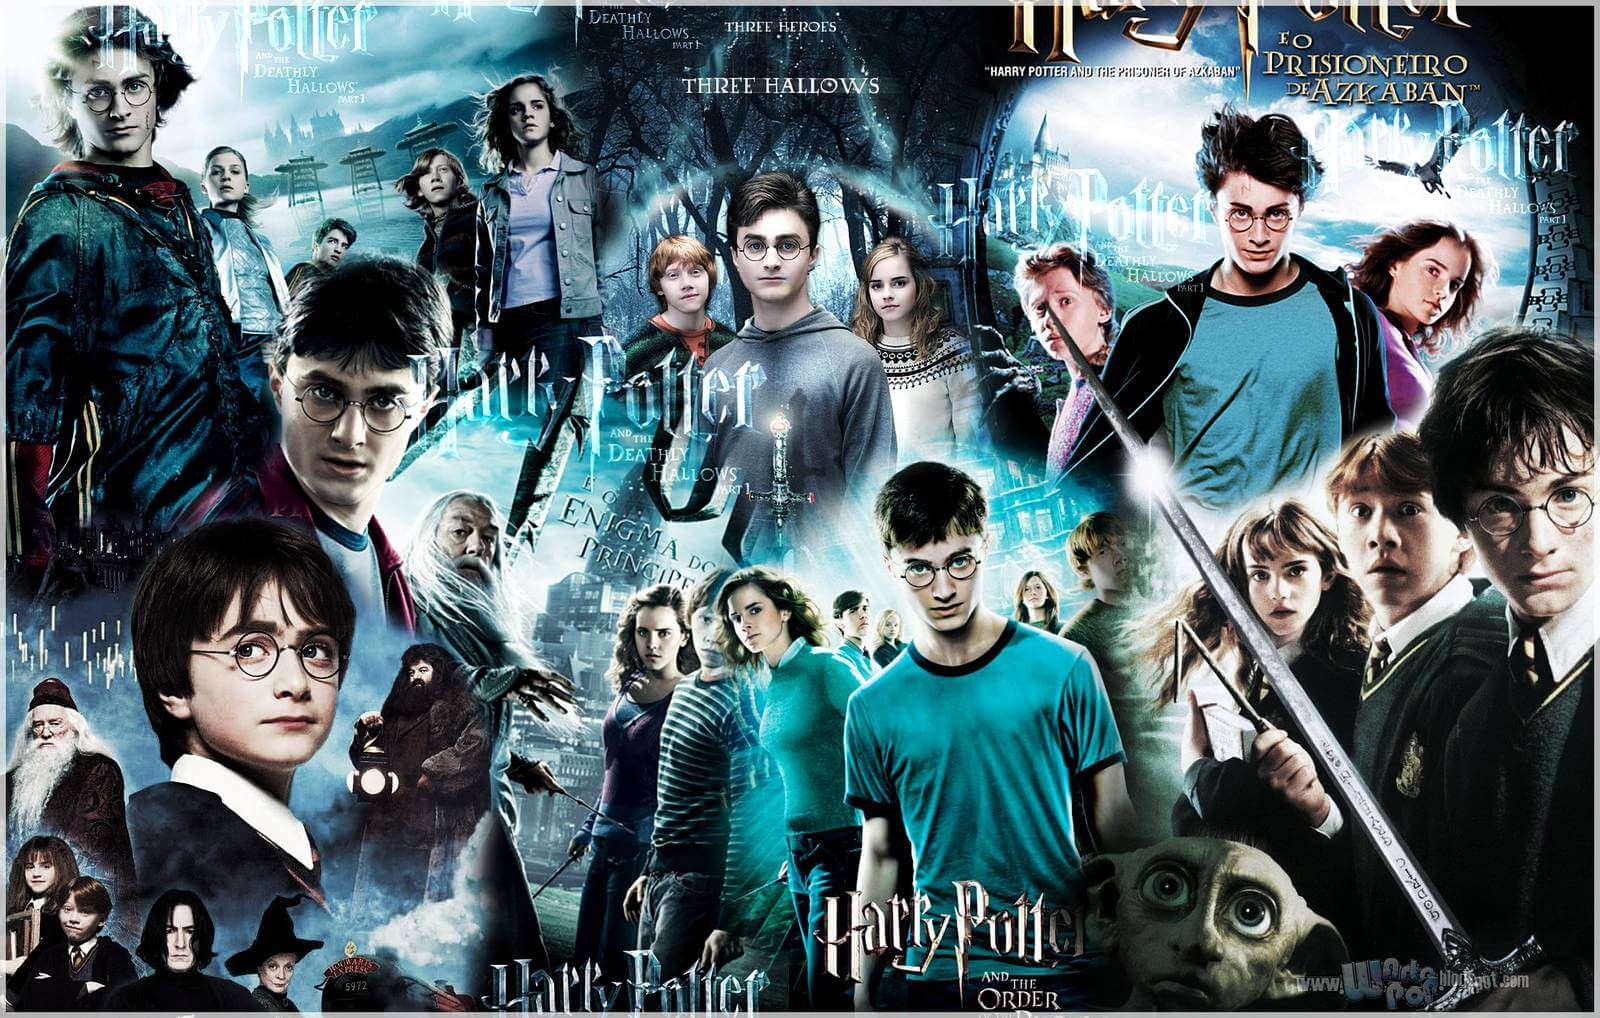 10-Things-About-Harry-Potter-That-You-Dont-Know